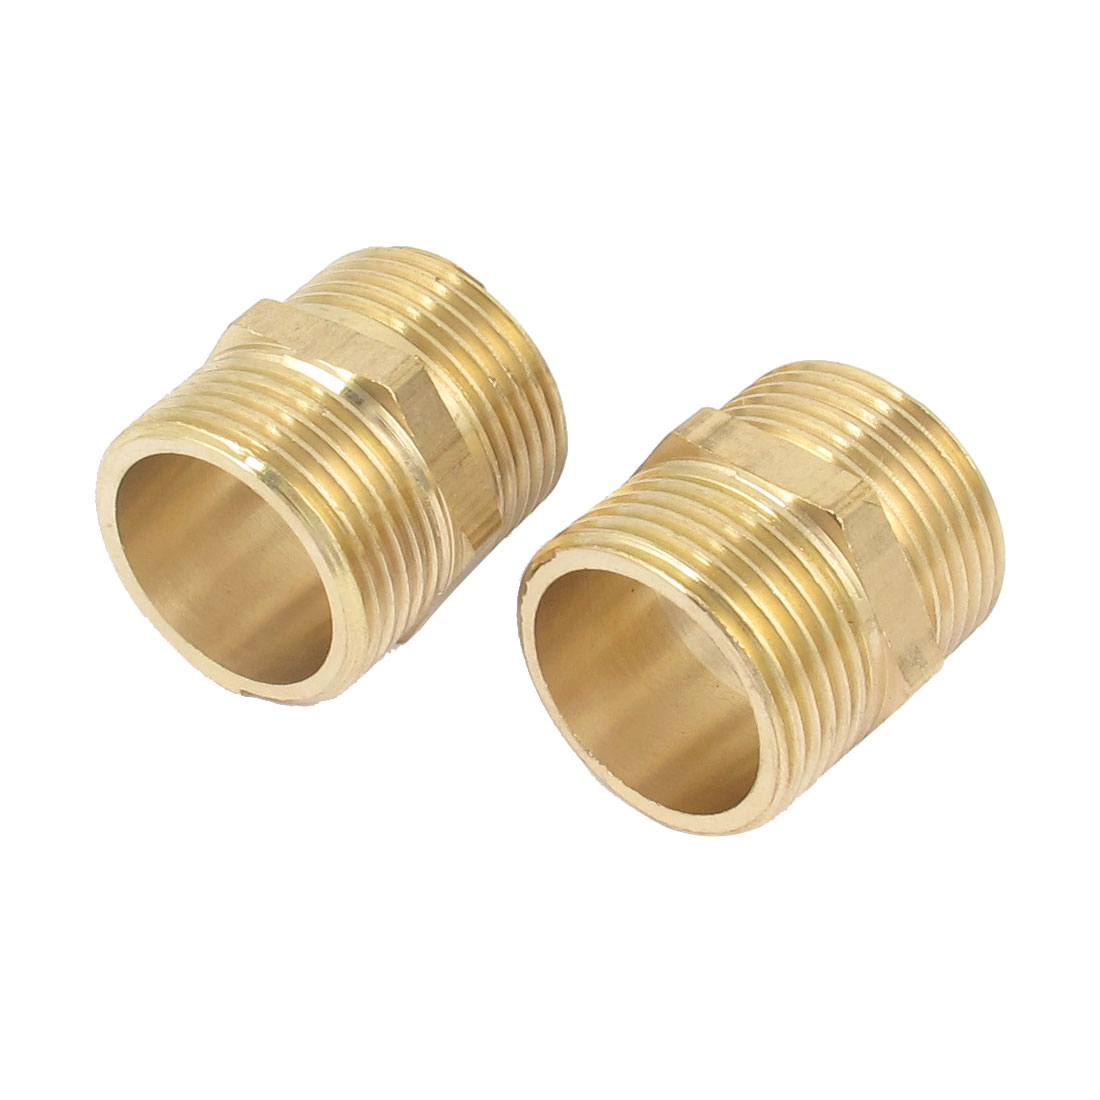 2 Pcs 1BSP to 1BSP Male Thread Brass Pipe Hex Nipple Fitting Quick Adapter